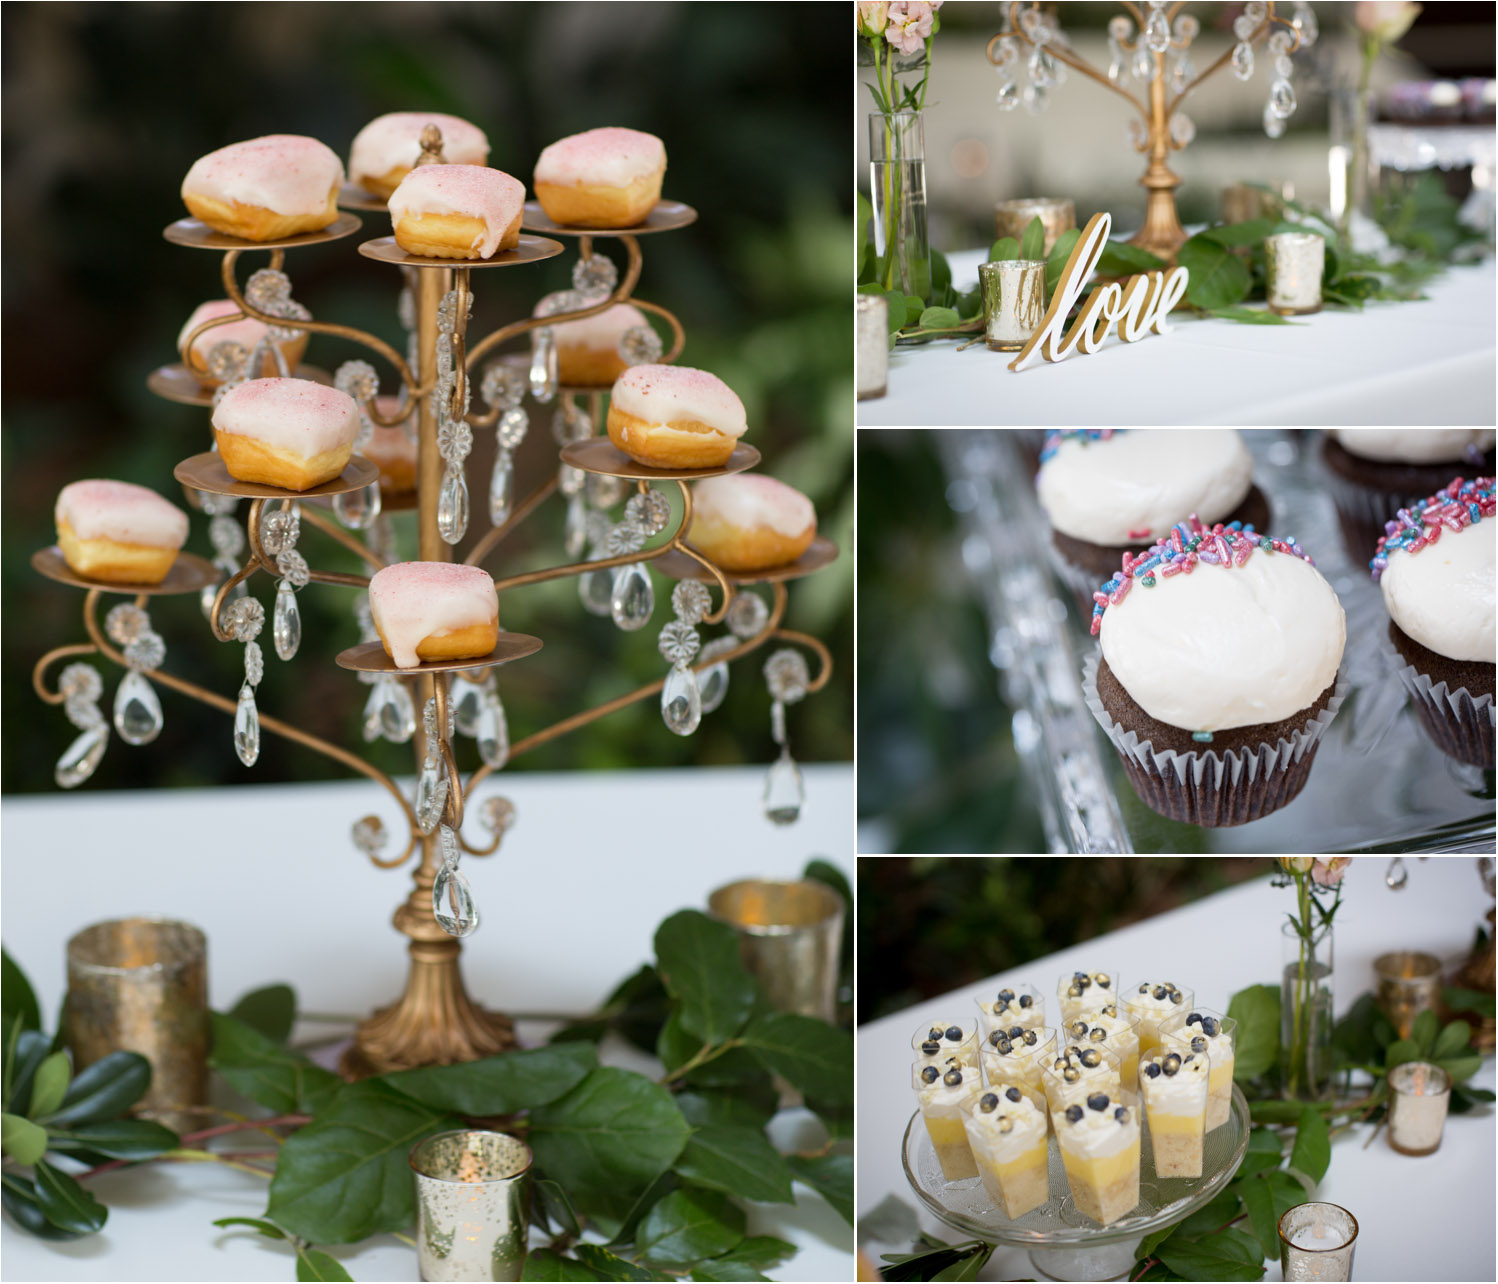 01-double-tree-park-place-st-louis-park-minneapolis-minnesota-wedding-photographer-styled-shoot-dessert-bar-donuts-angel-food-bakery-cupcakes-metallic-sparkly-spinkles-cheesecake-gold-berries-edible-paint-mahonen-photography.jpg